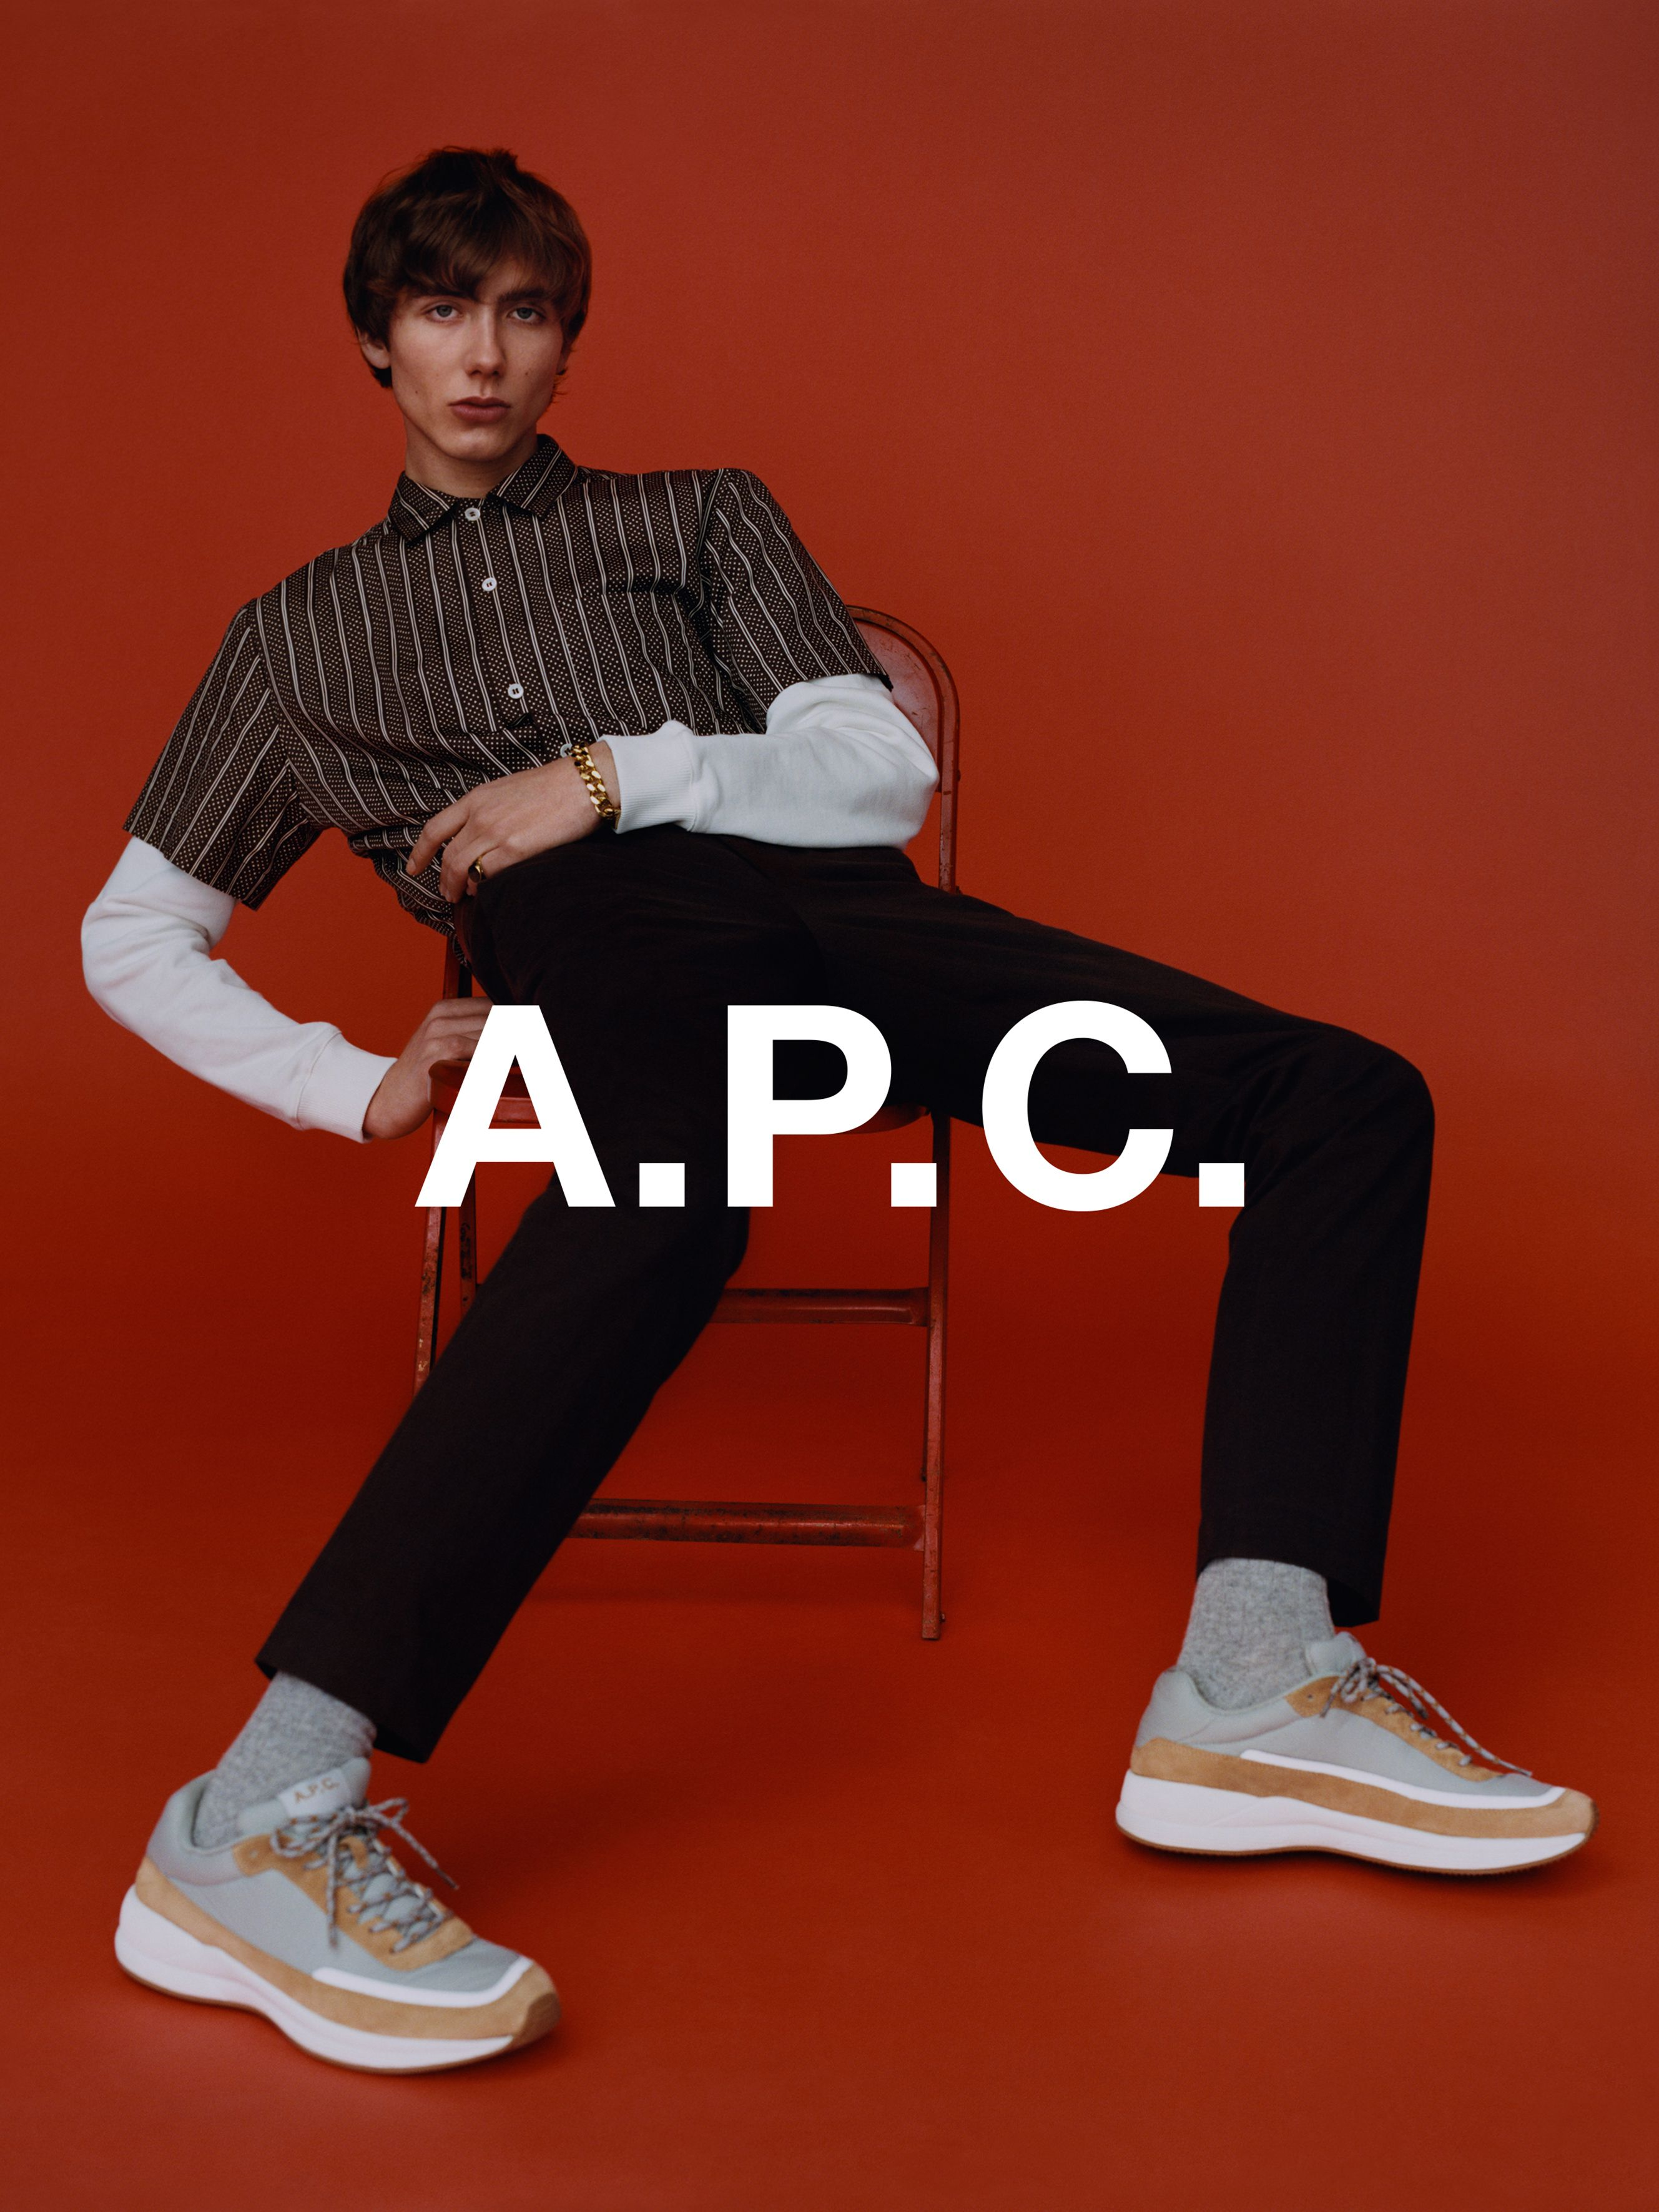 da7a1956952a Paul Hameline photographed by Harley Weir and styled by Suzanne Koller for  A.P.C fall   winter